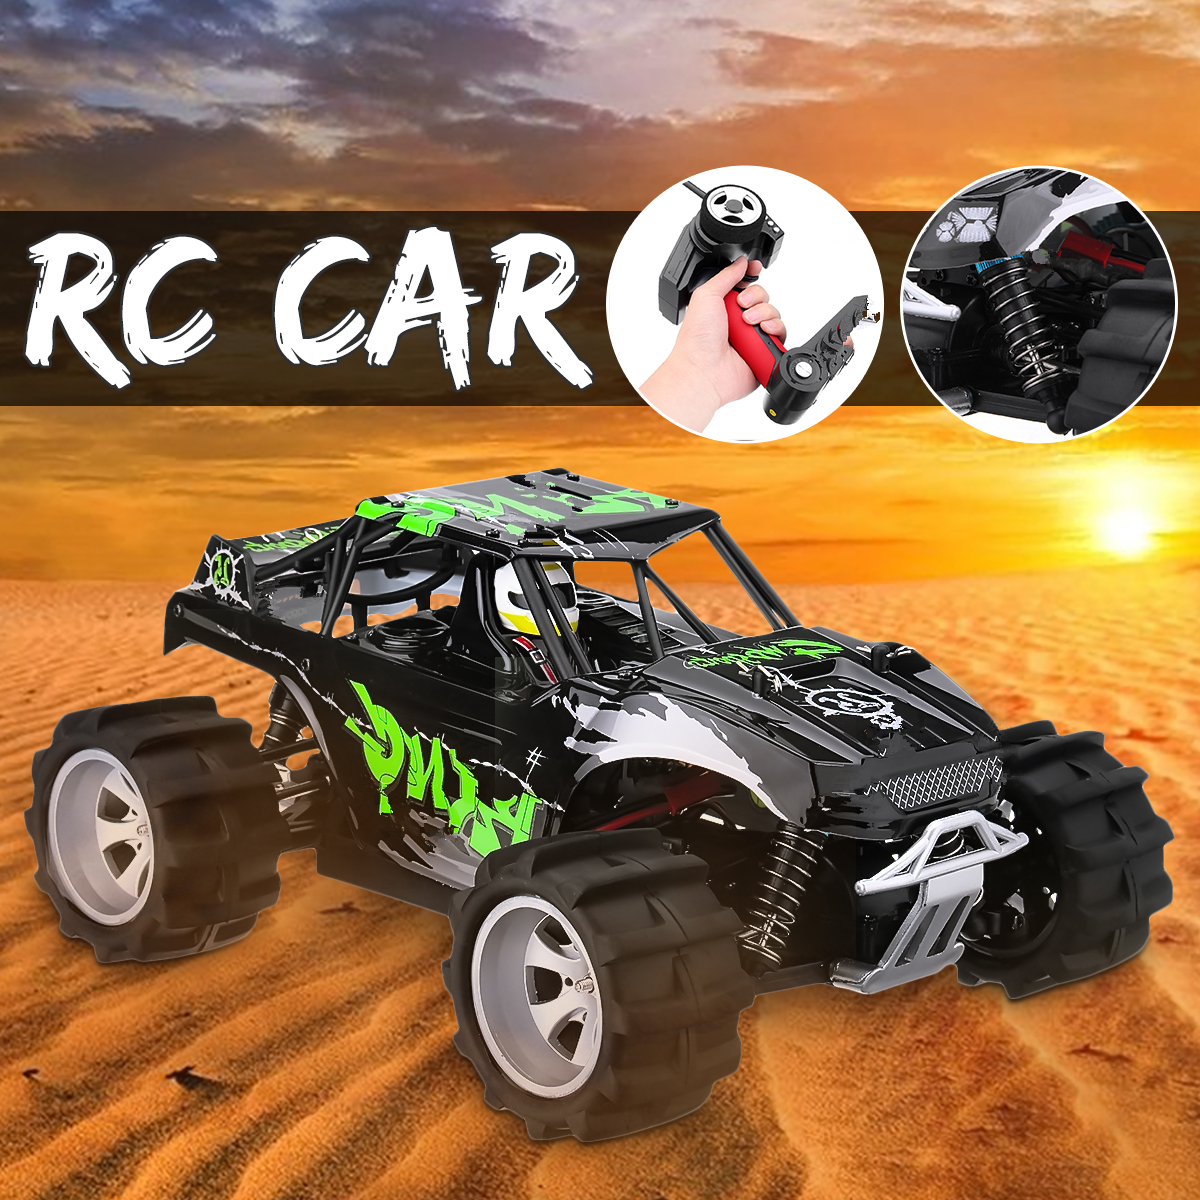 New Toy Car Truck All Terrain Off-road Rechargeable 20 Volt Remote Control High Speed Racing RC Car Off Road Truck 1:18 RC Drift remote control 1 32 detachable rc trailer truck toy with light and sounds car